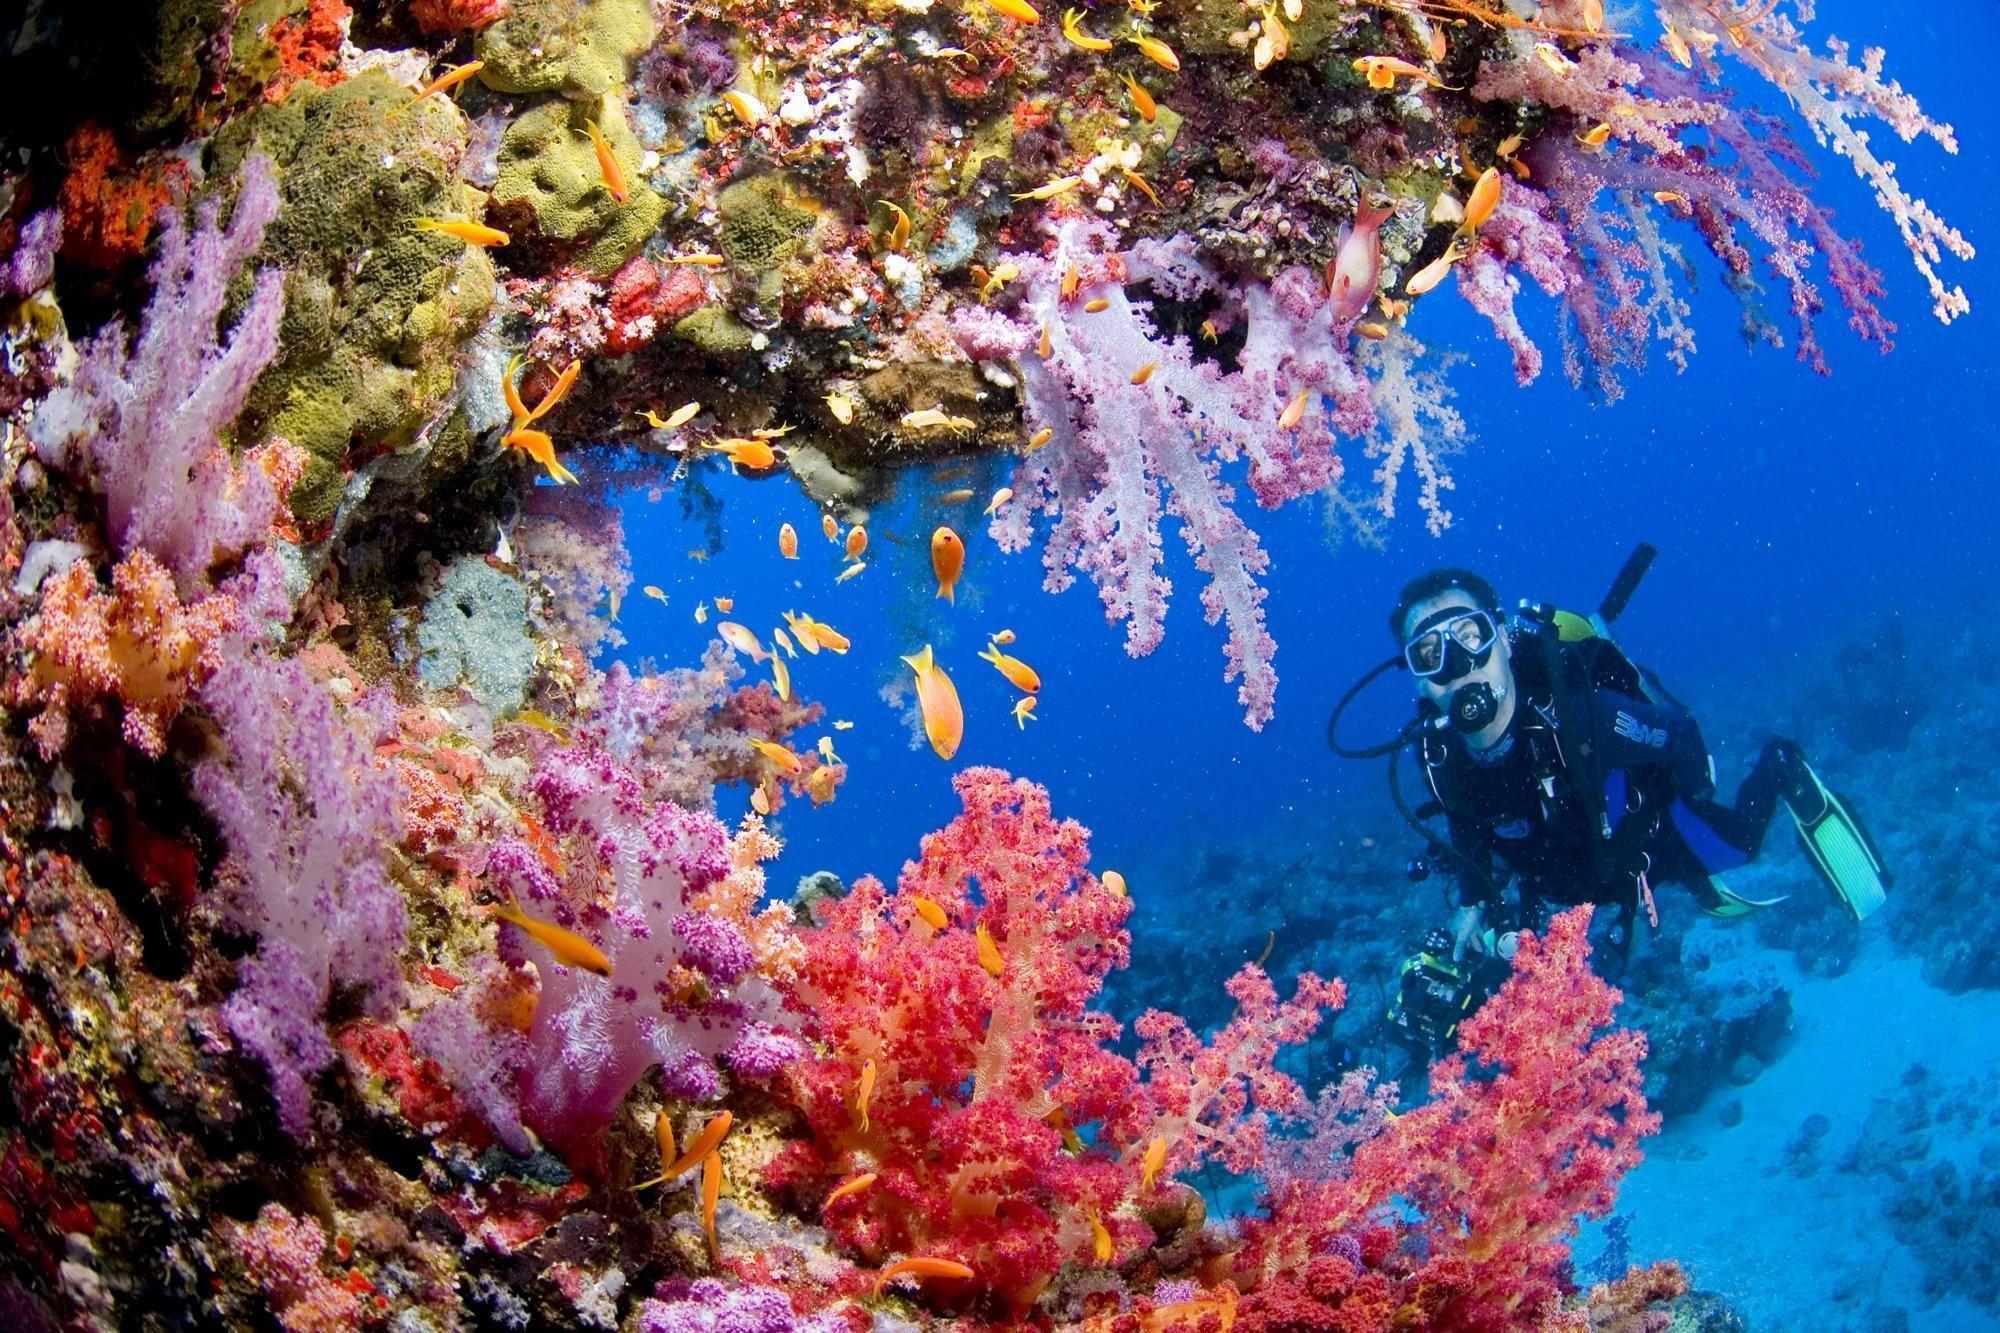 Exploring Coral Reef Sanganeb Sudan Wallpaper | High Quality PC ...